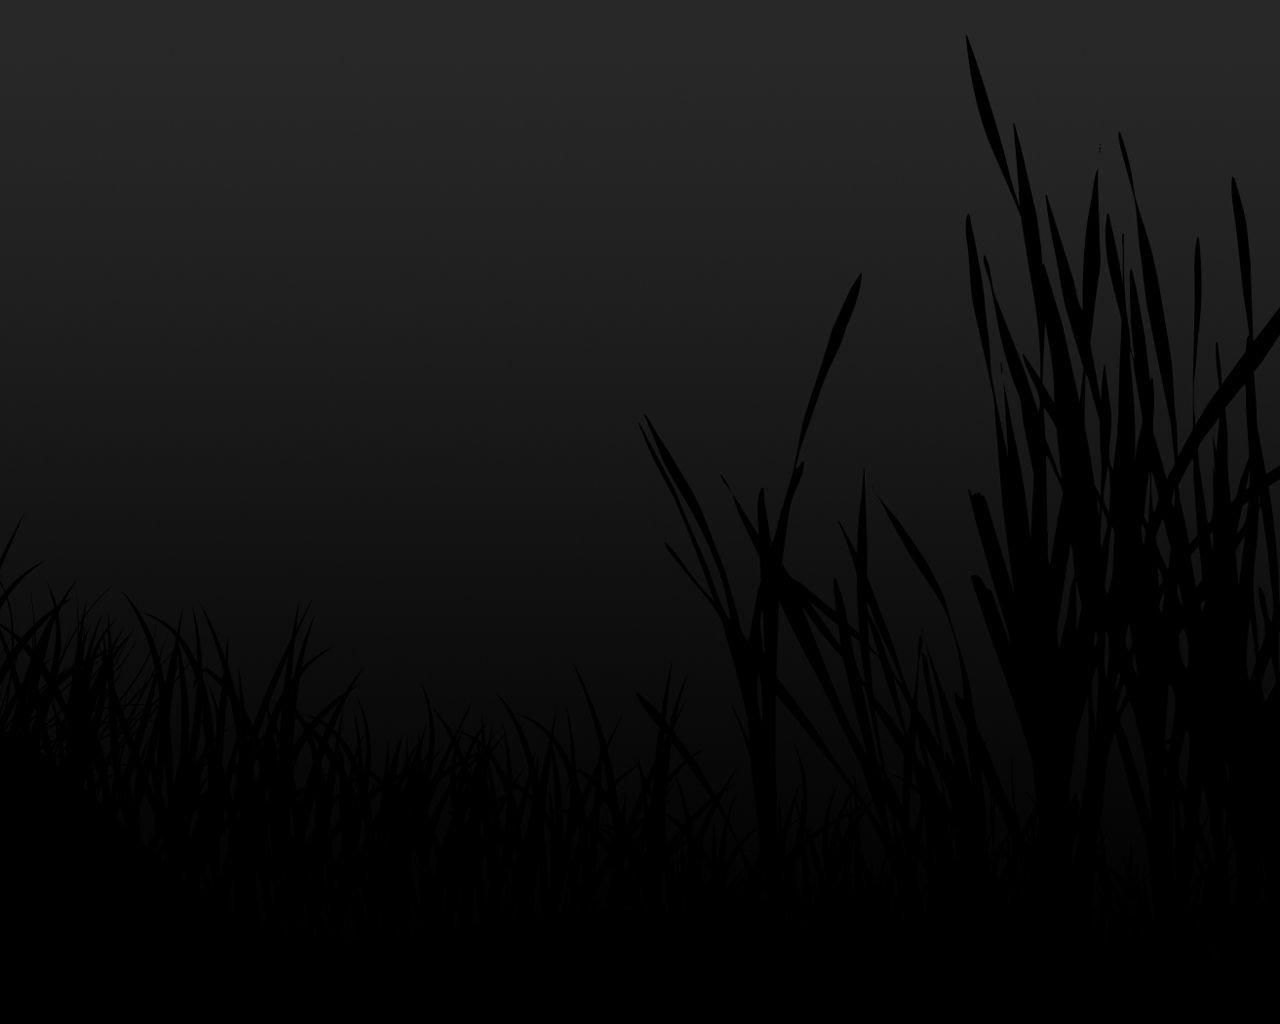 Plain Black Wallpaper 23 Wide